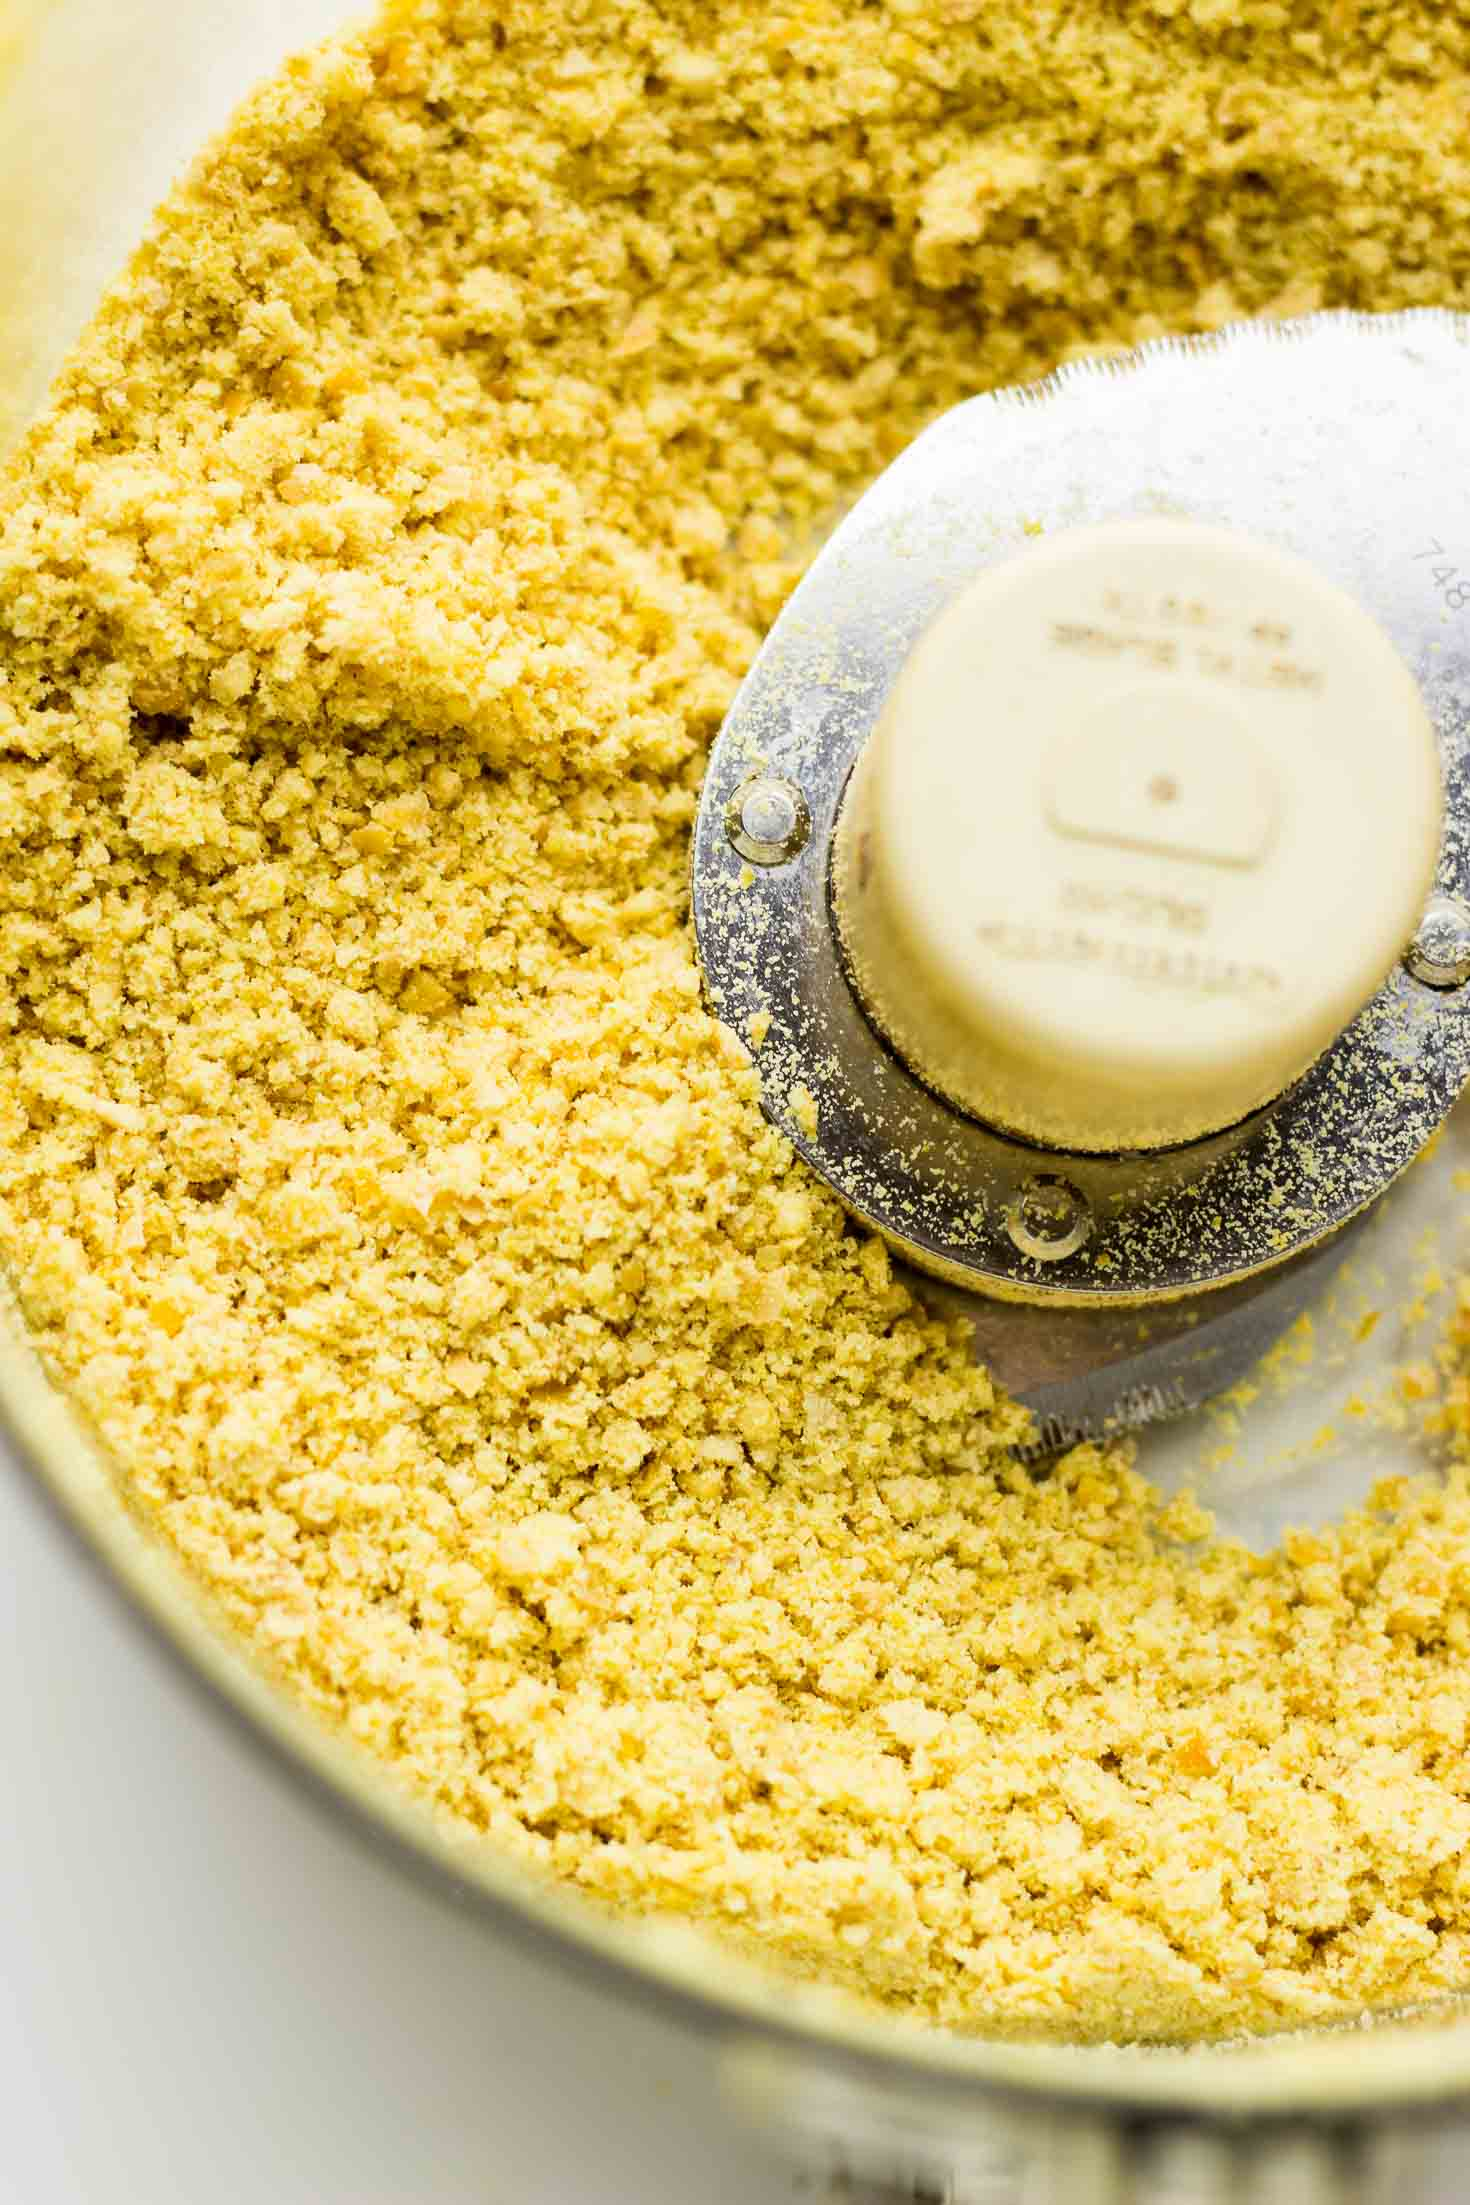 Nut-Free Vegan Parmesan Cheese